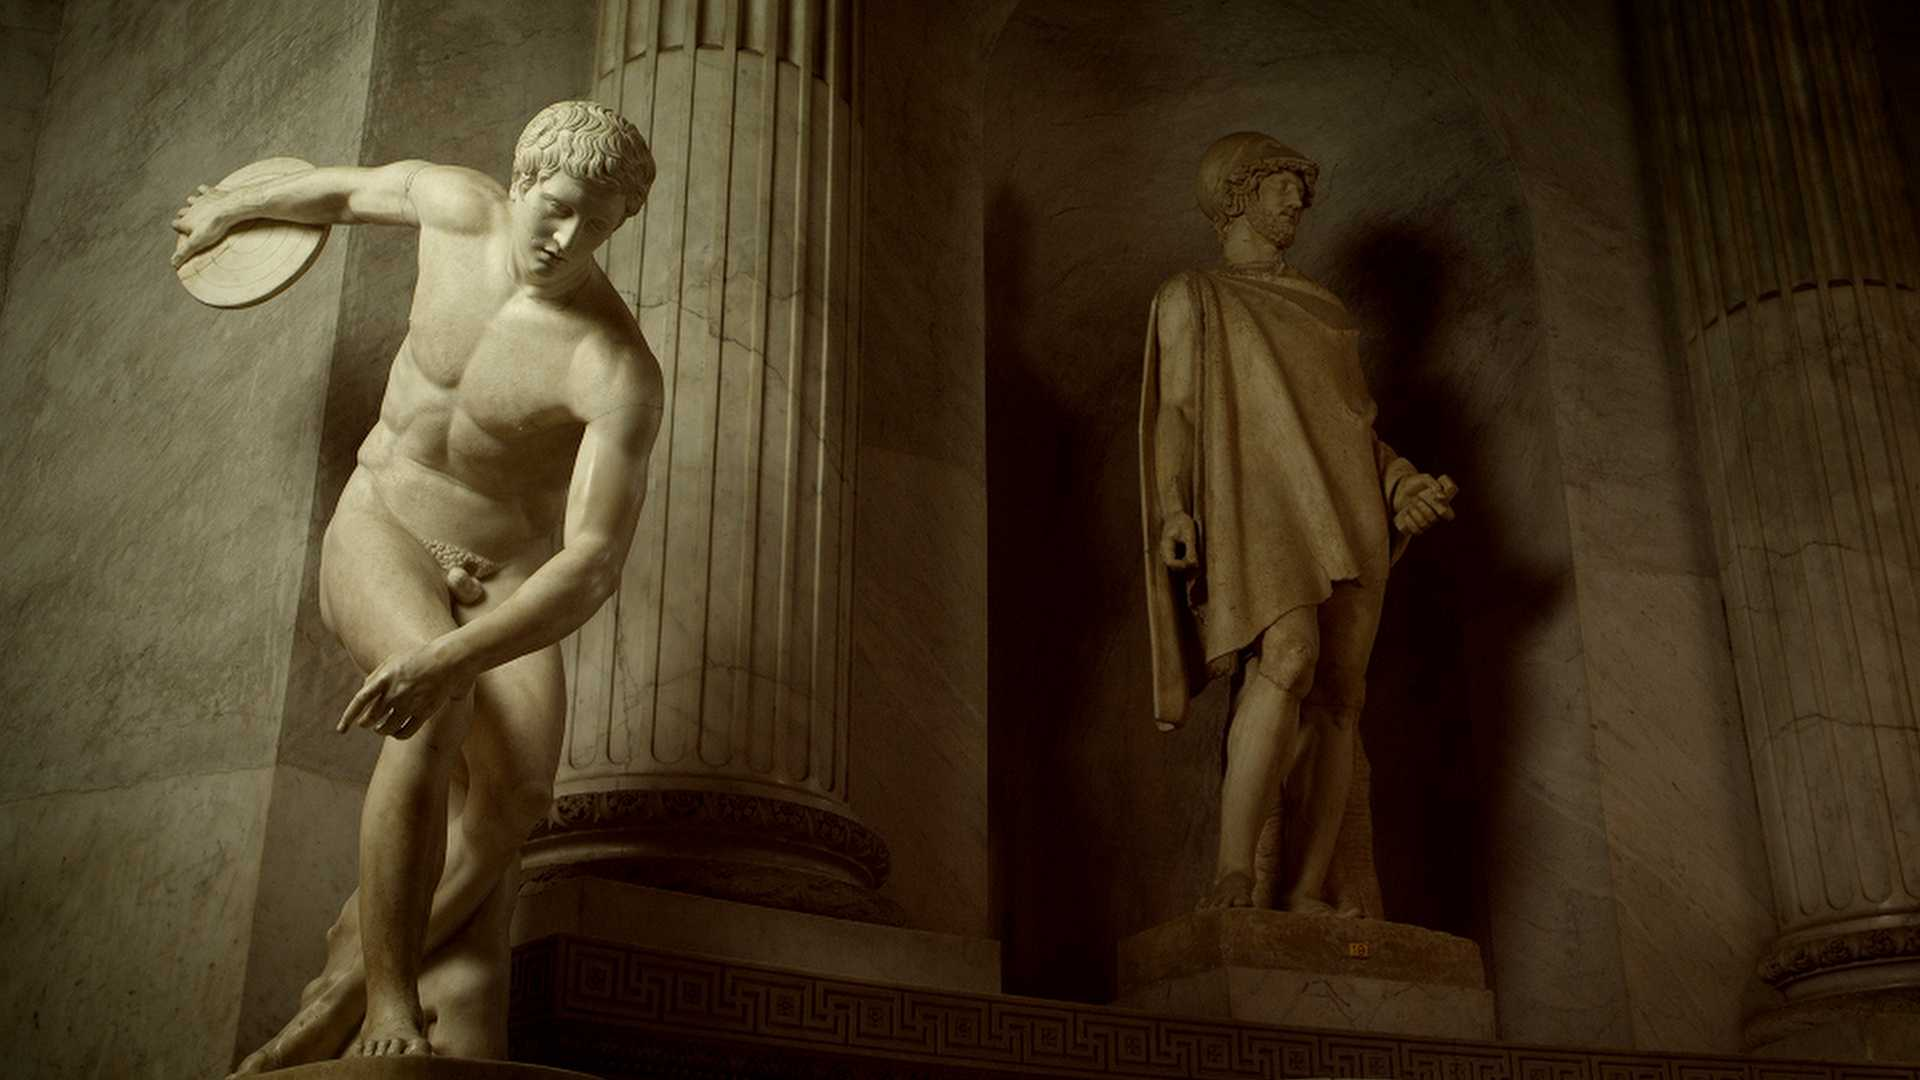 Musei Vaticani 3D, un viaggio in Ultra HD 4K / 3D in esclusiva su Sky | Digitale terrestre: Dtti.it